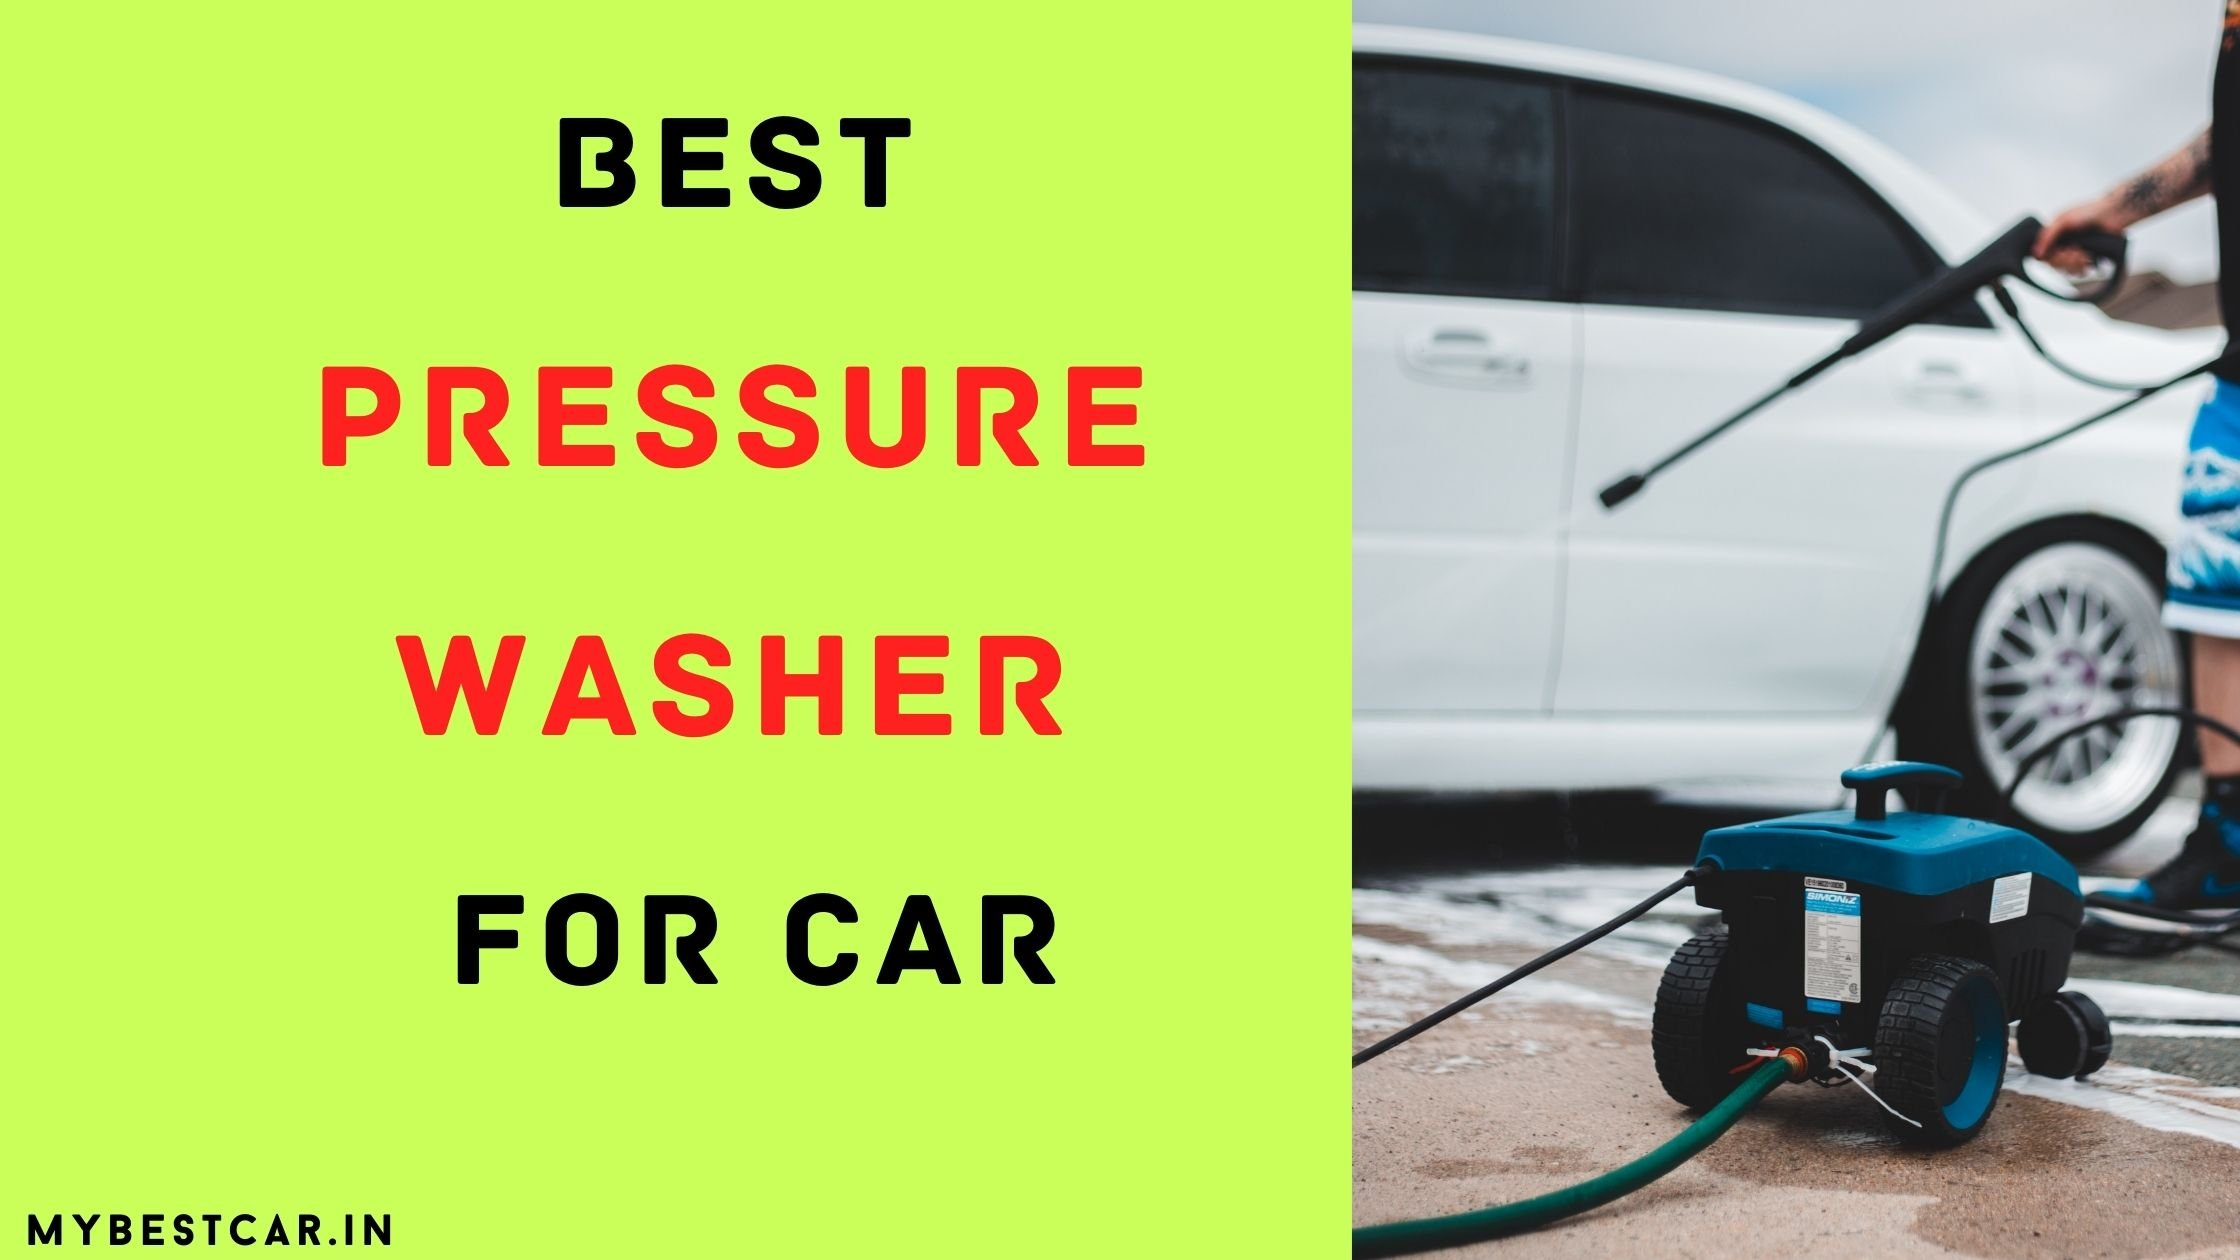 Best Pressure Washer For Car in India